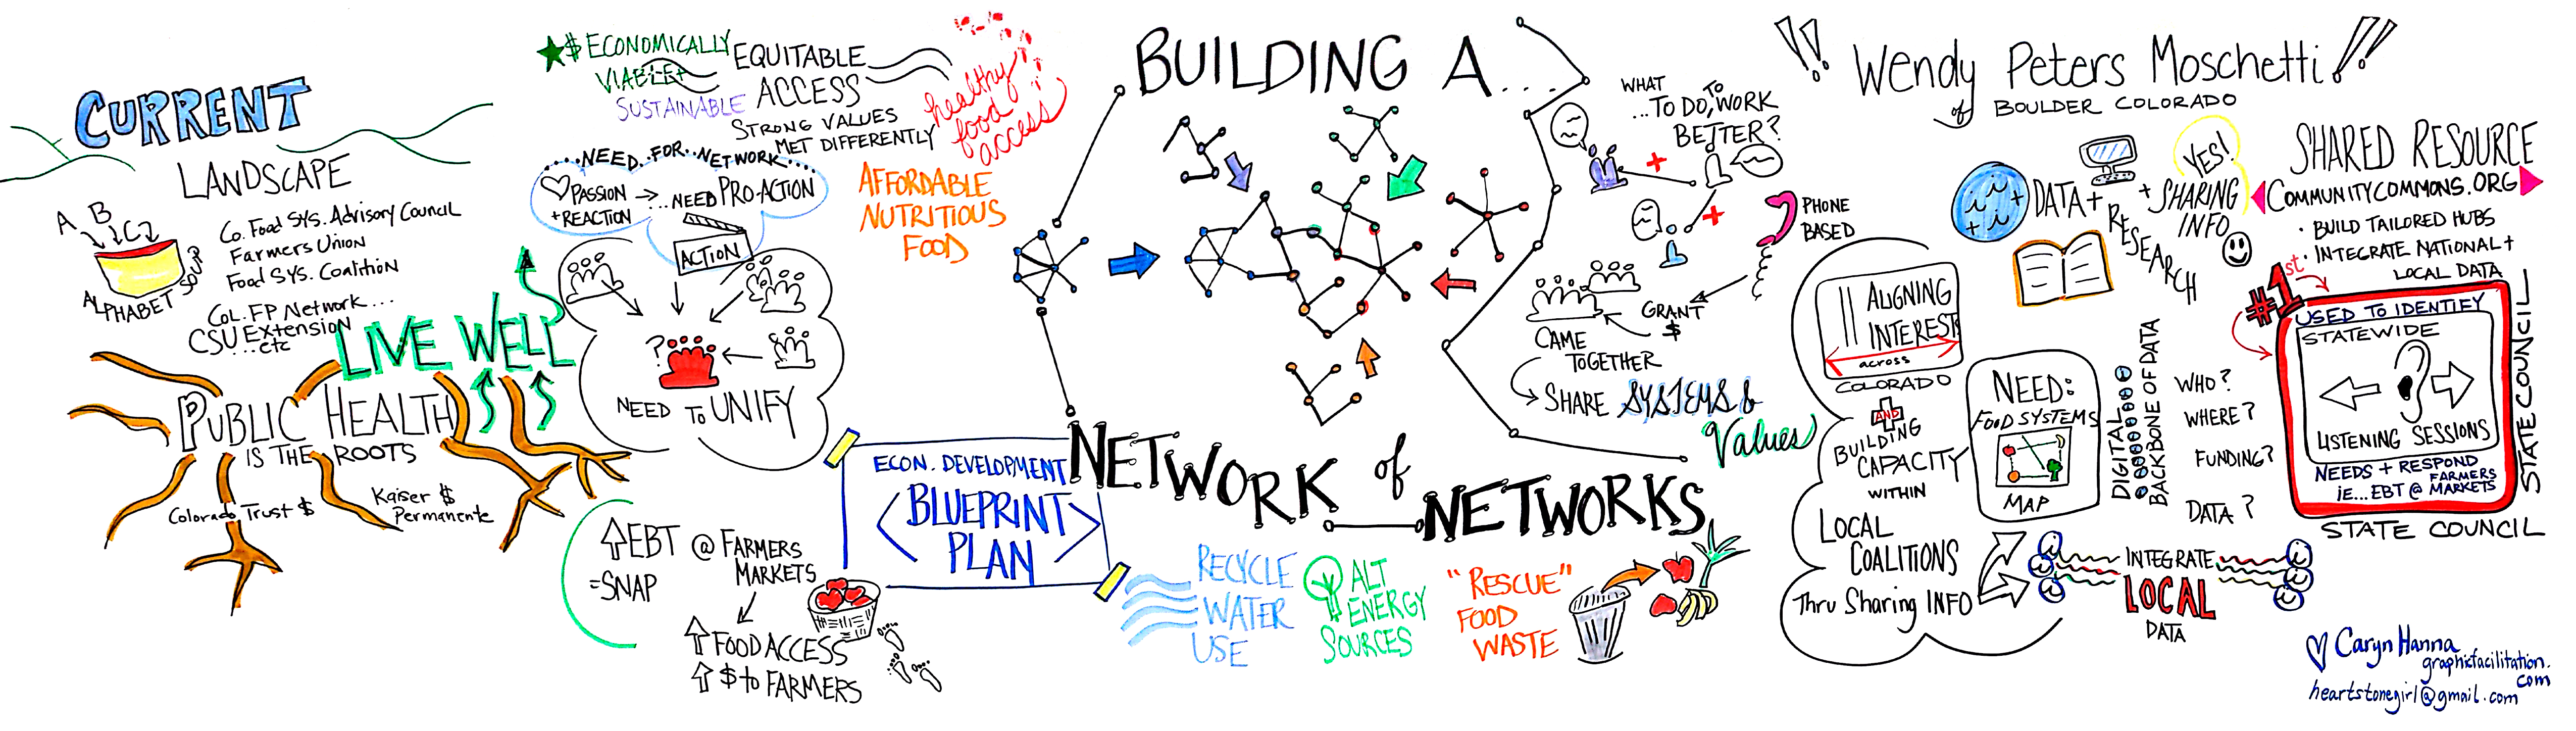 Network.of.Networks